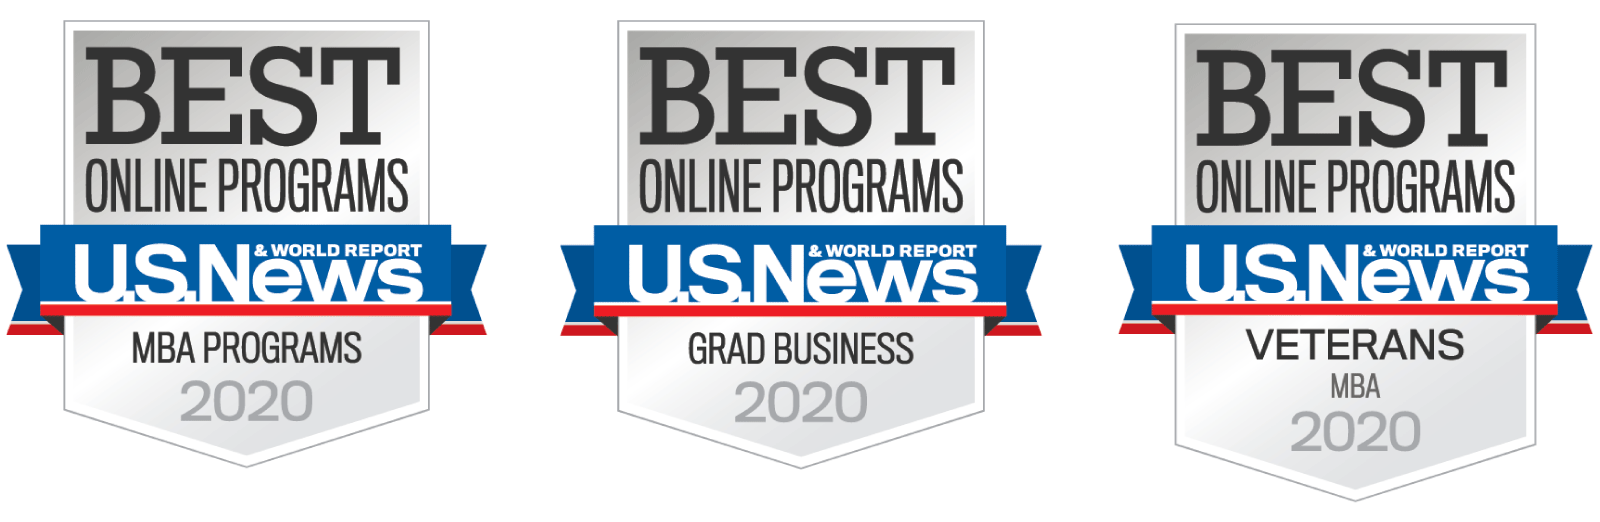 US News and World Report Best Online Business Programs